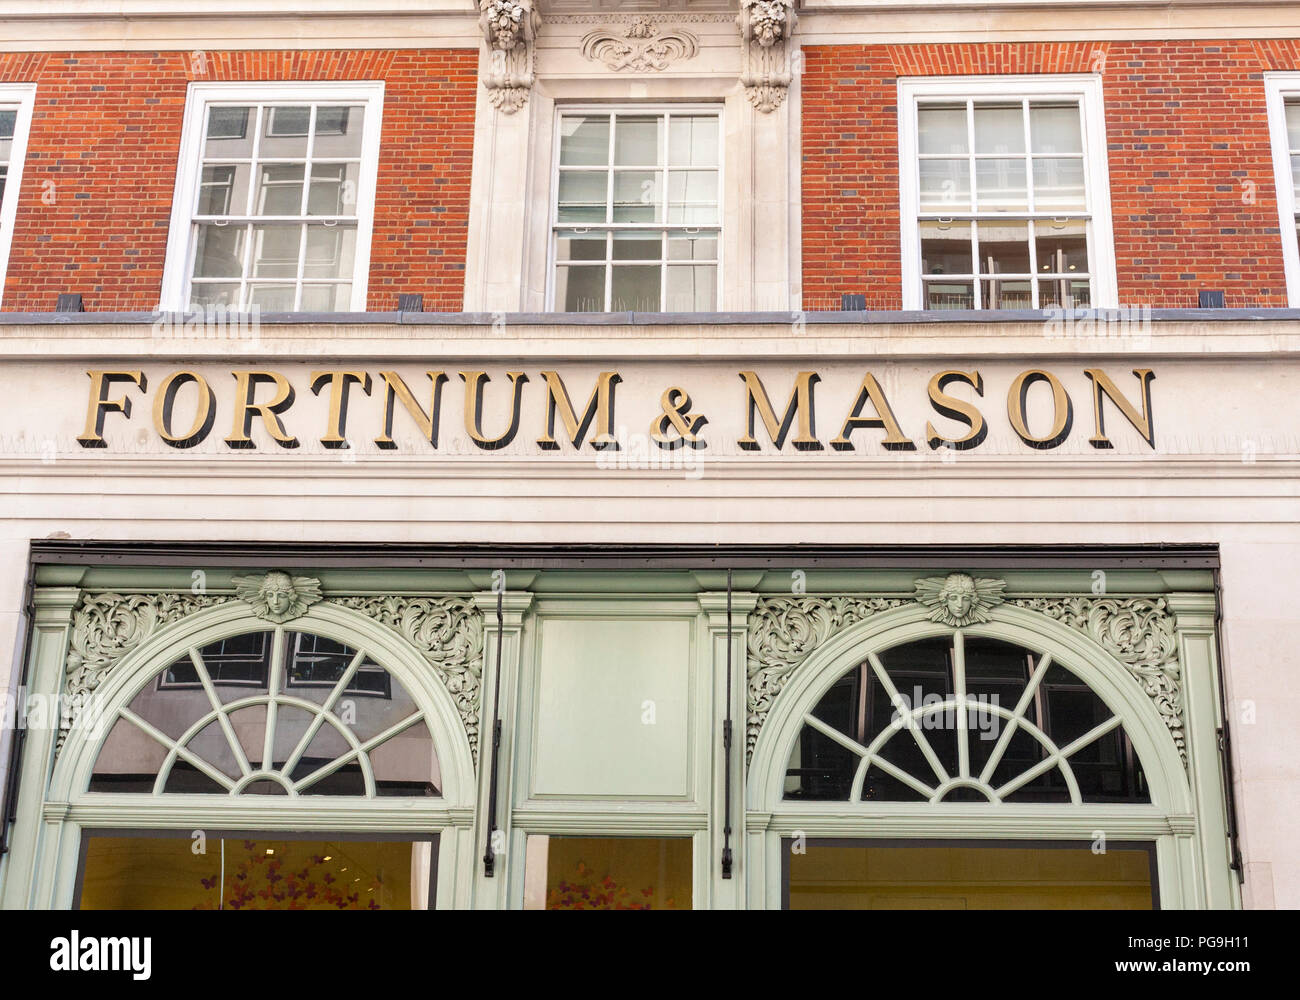 Exterior of famous department store with signage, Fortnum & Mason, in Piccadilly, London, UK - Stock Image